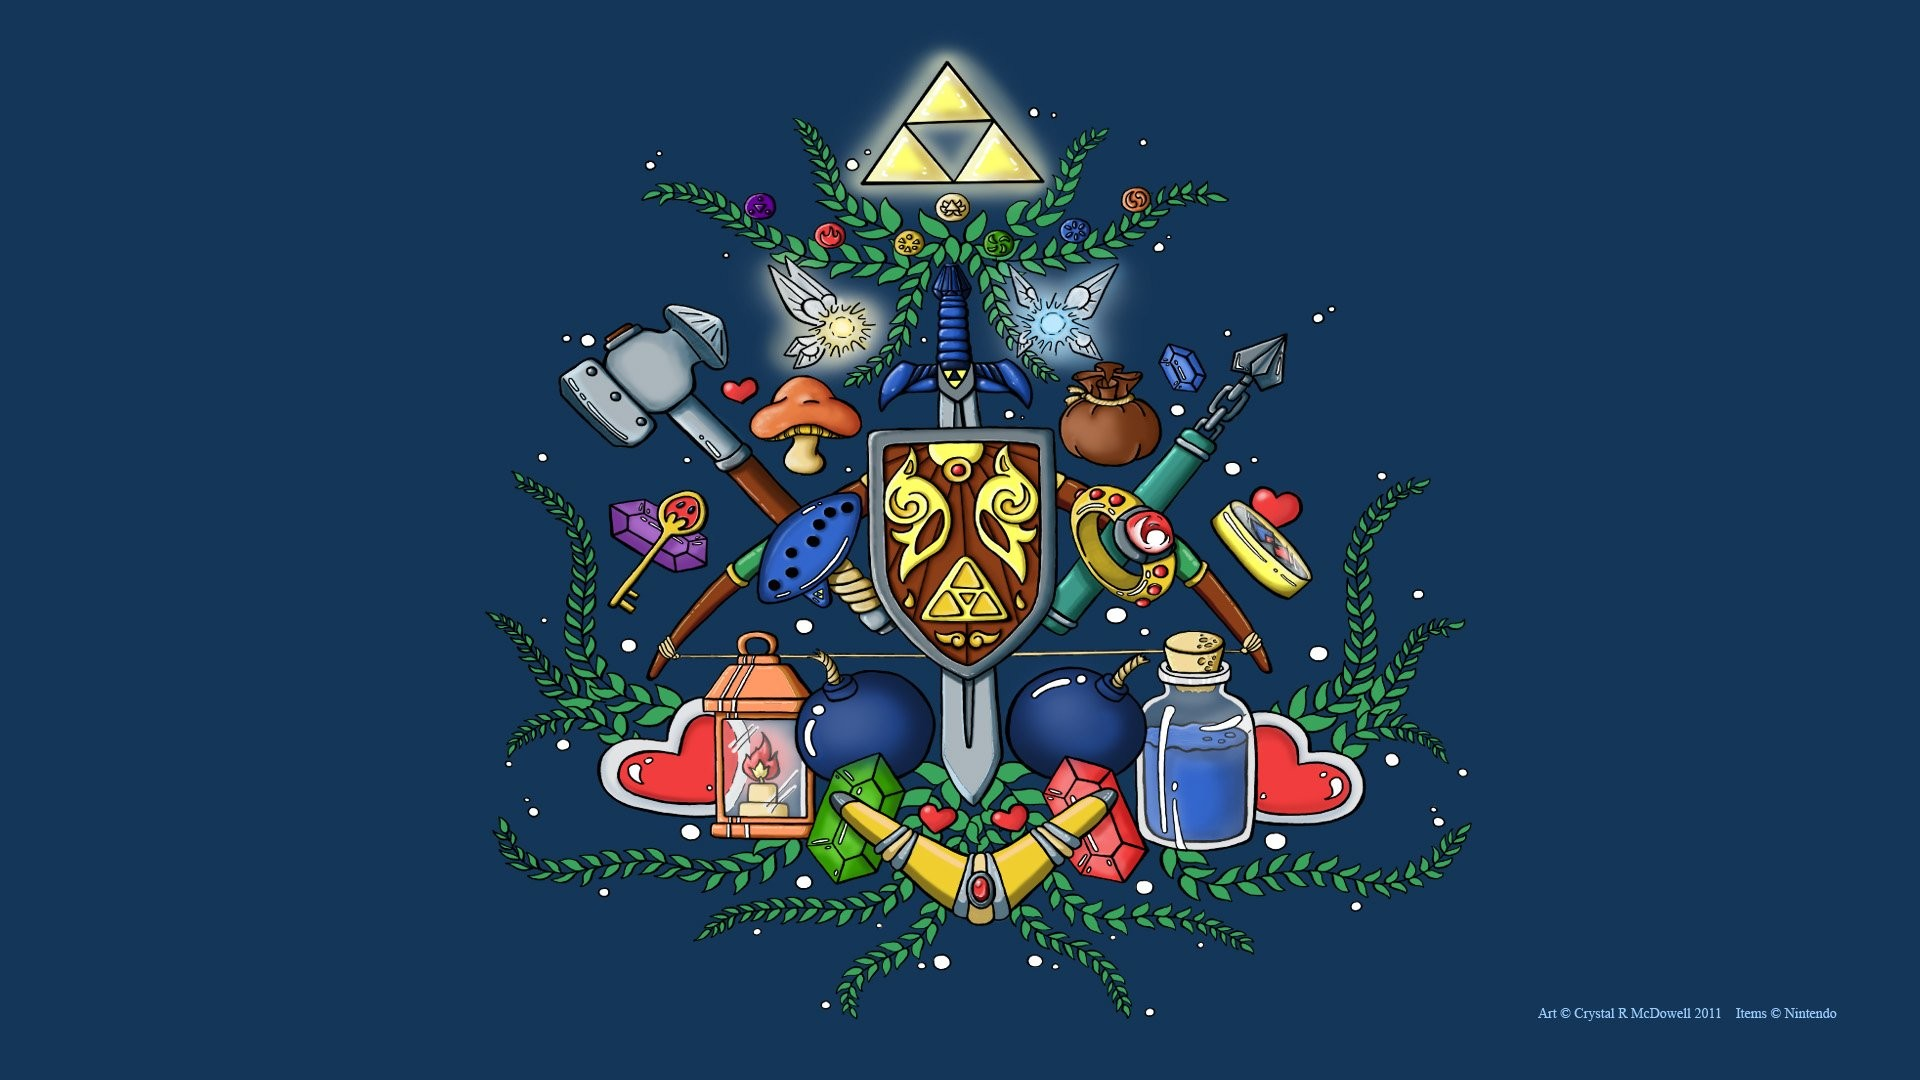 Download The Legend Of Zelda Wallpapers for android, The Legend Of 1920×1080